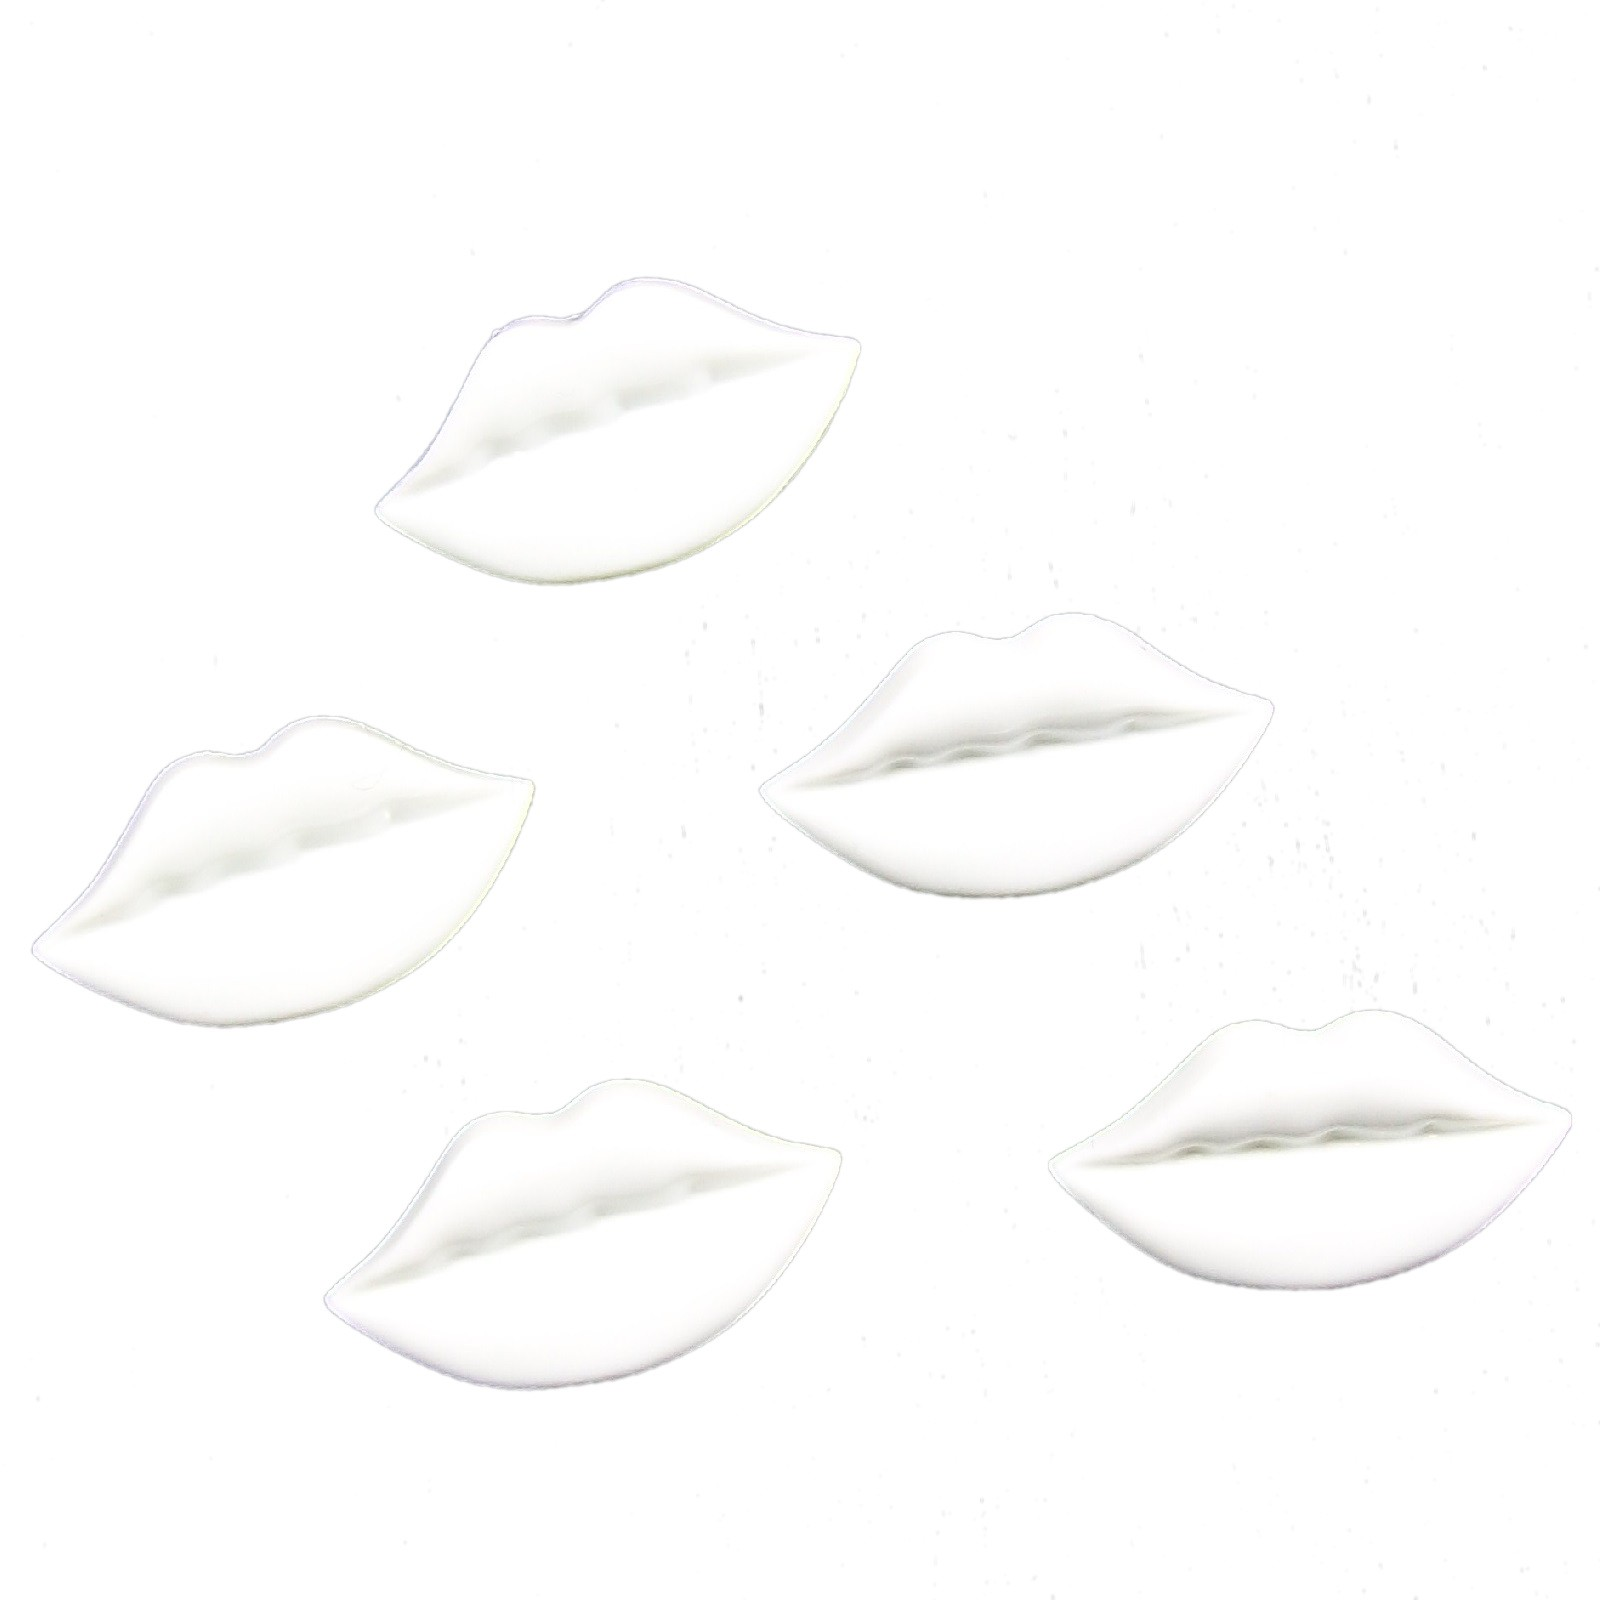 Lips Shape Plastic Kitsch Buttons 25mm White Pack of 5